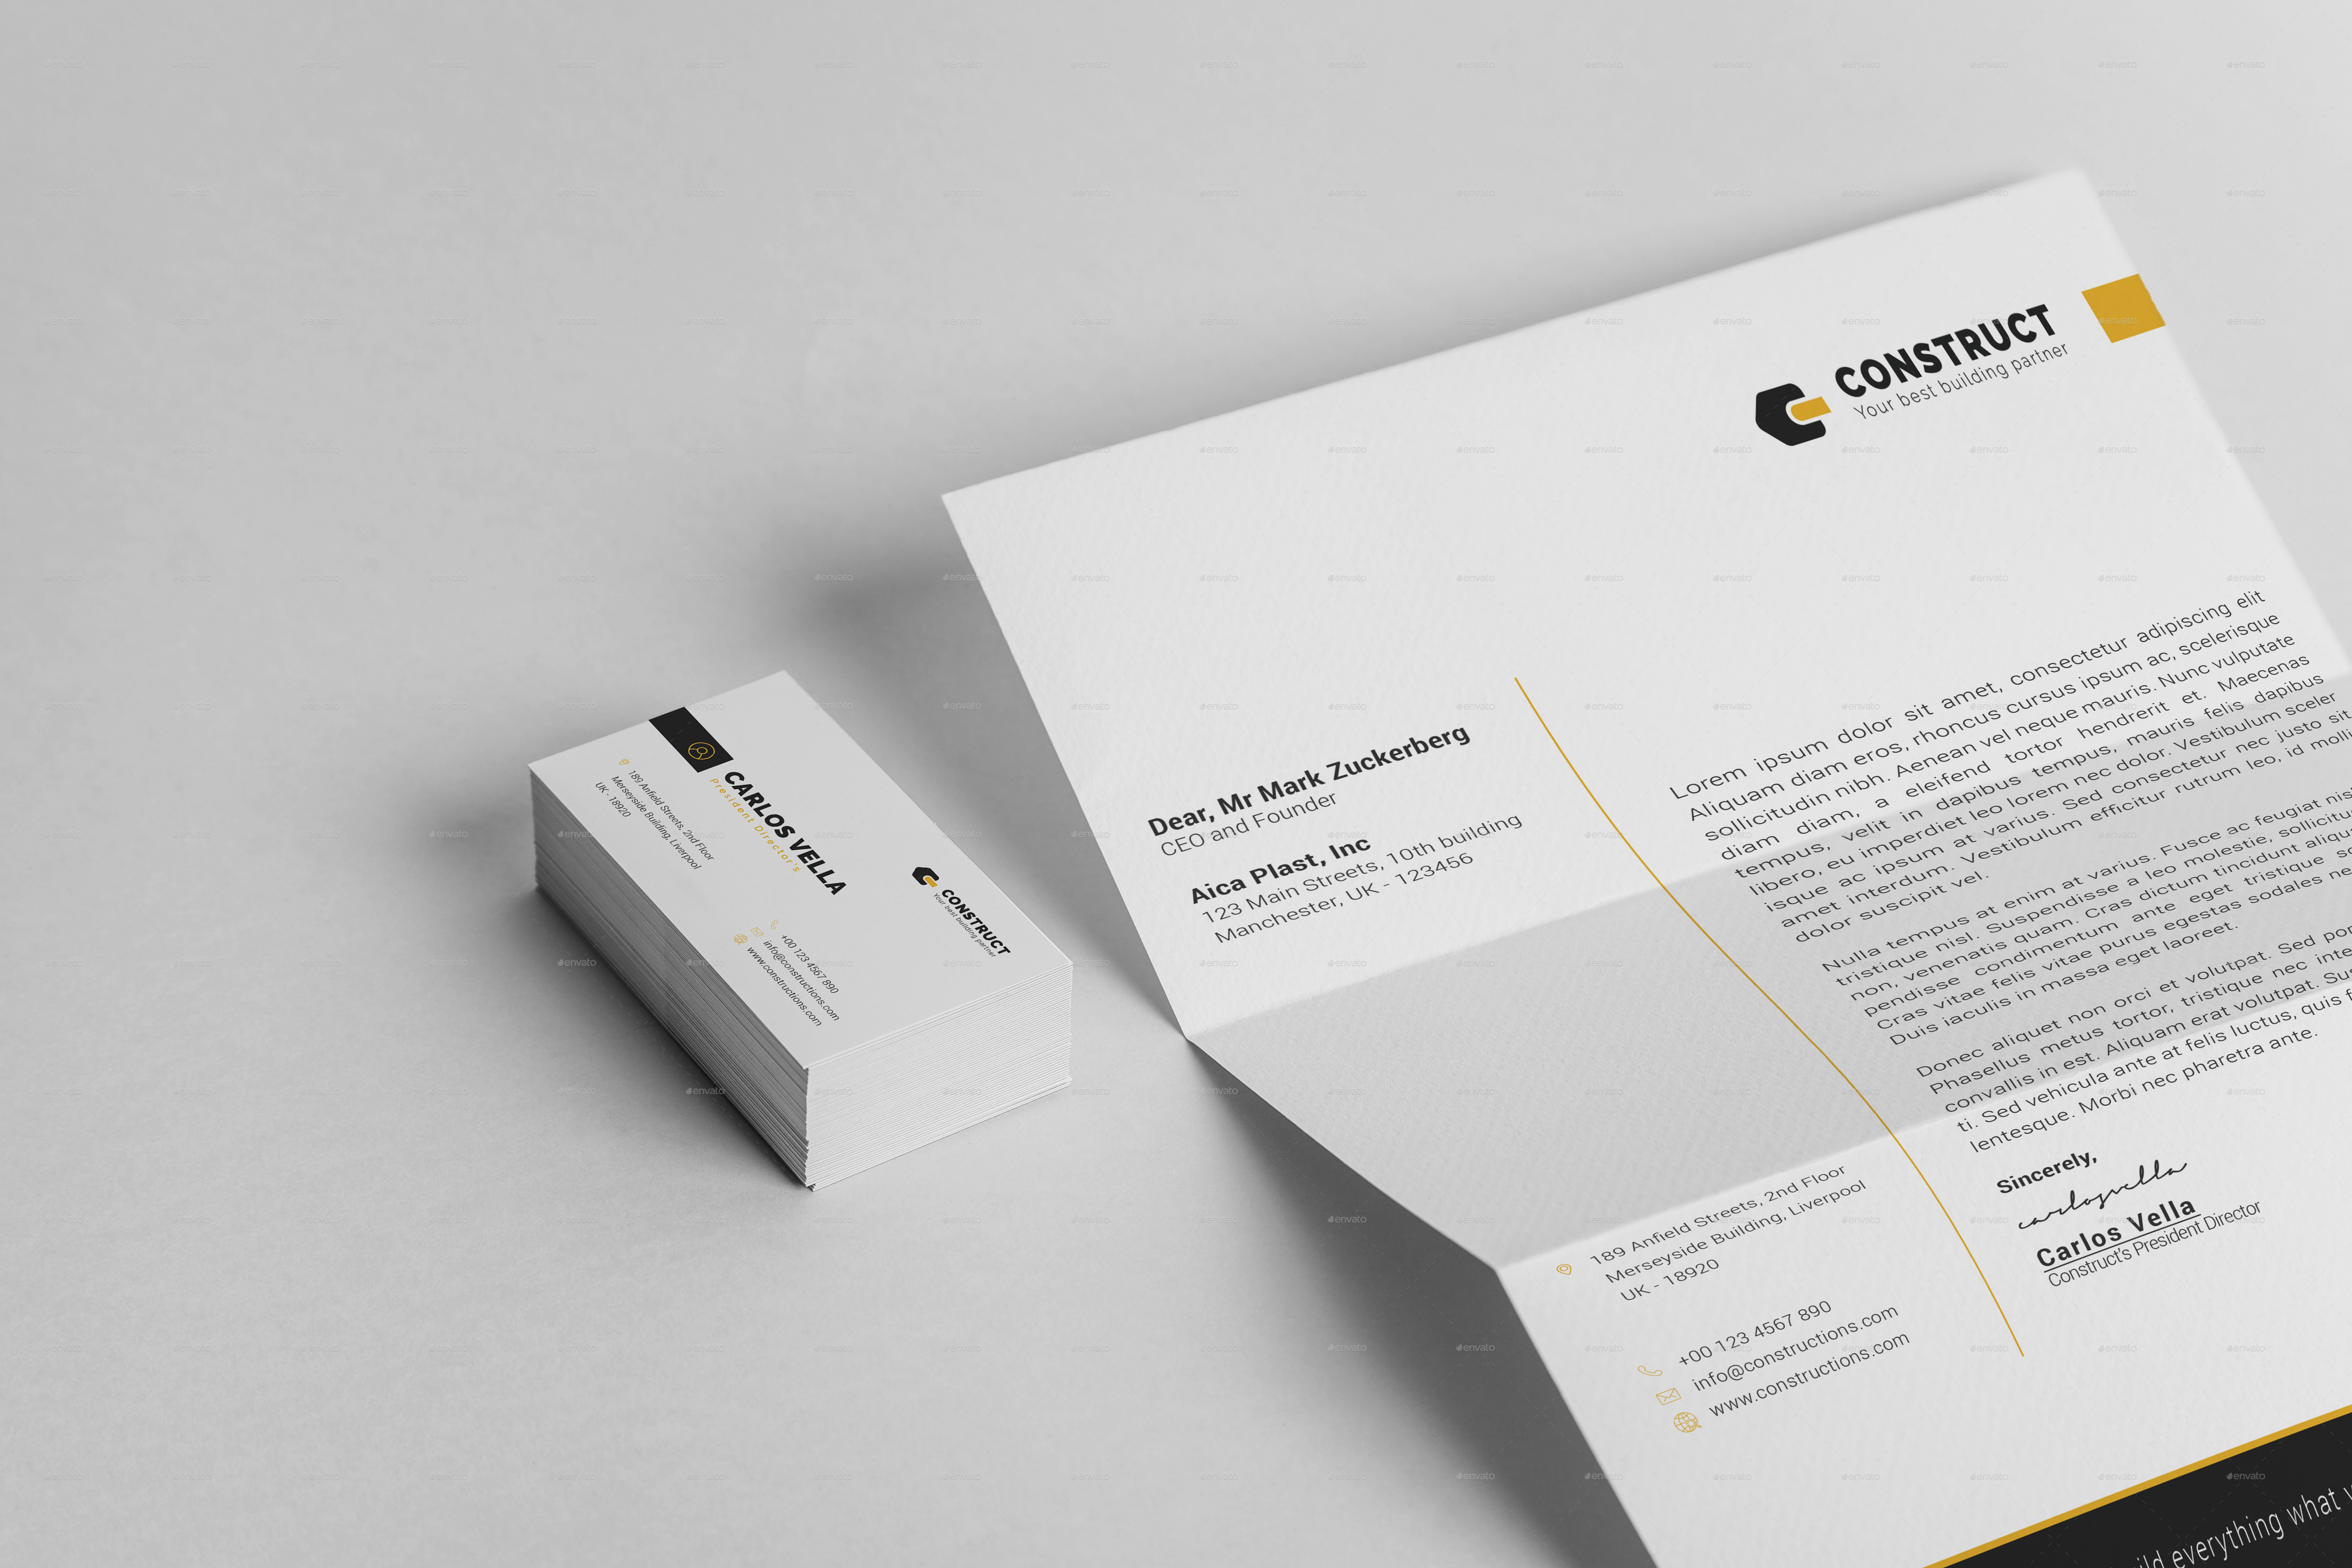 Perfect business cards liverpool pattern business card ideas business cards printing liverpool image collections card design reheart Image collections